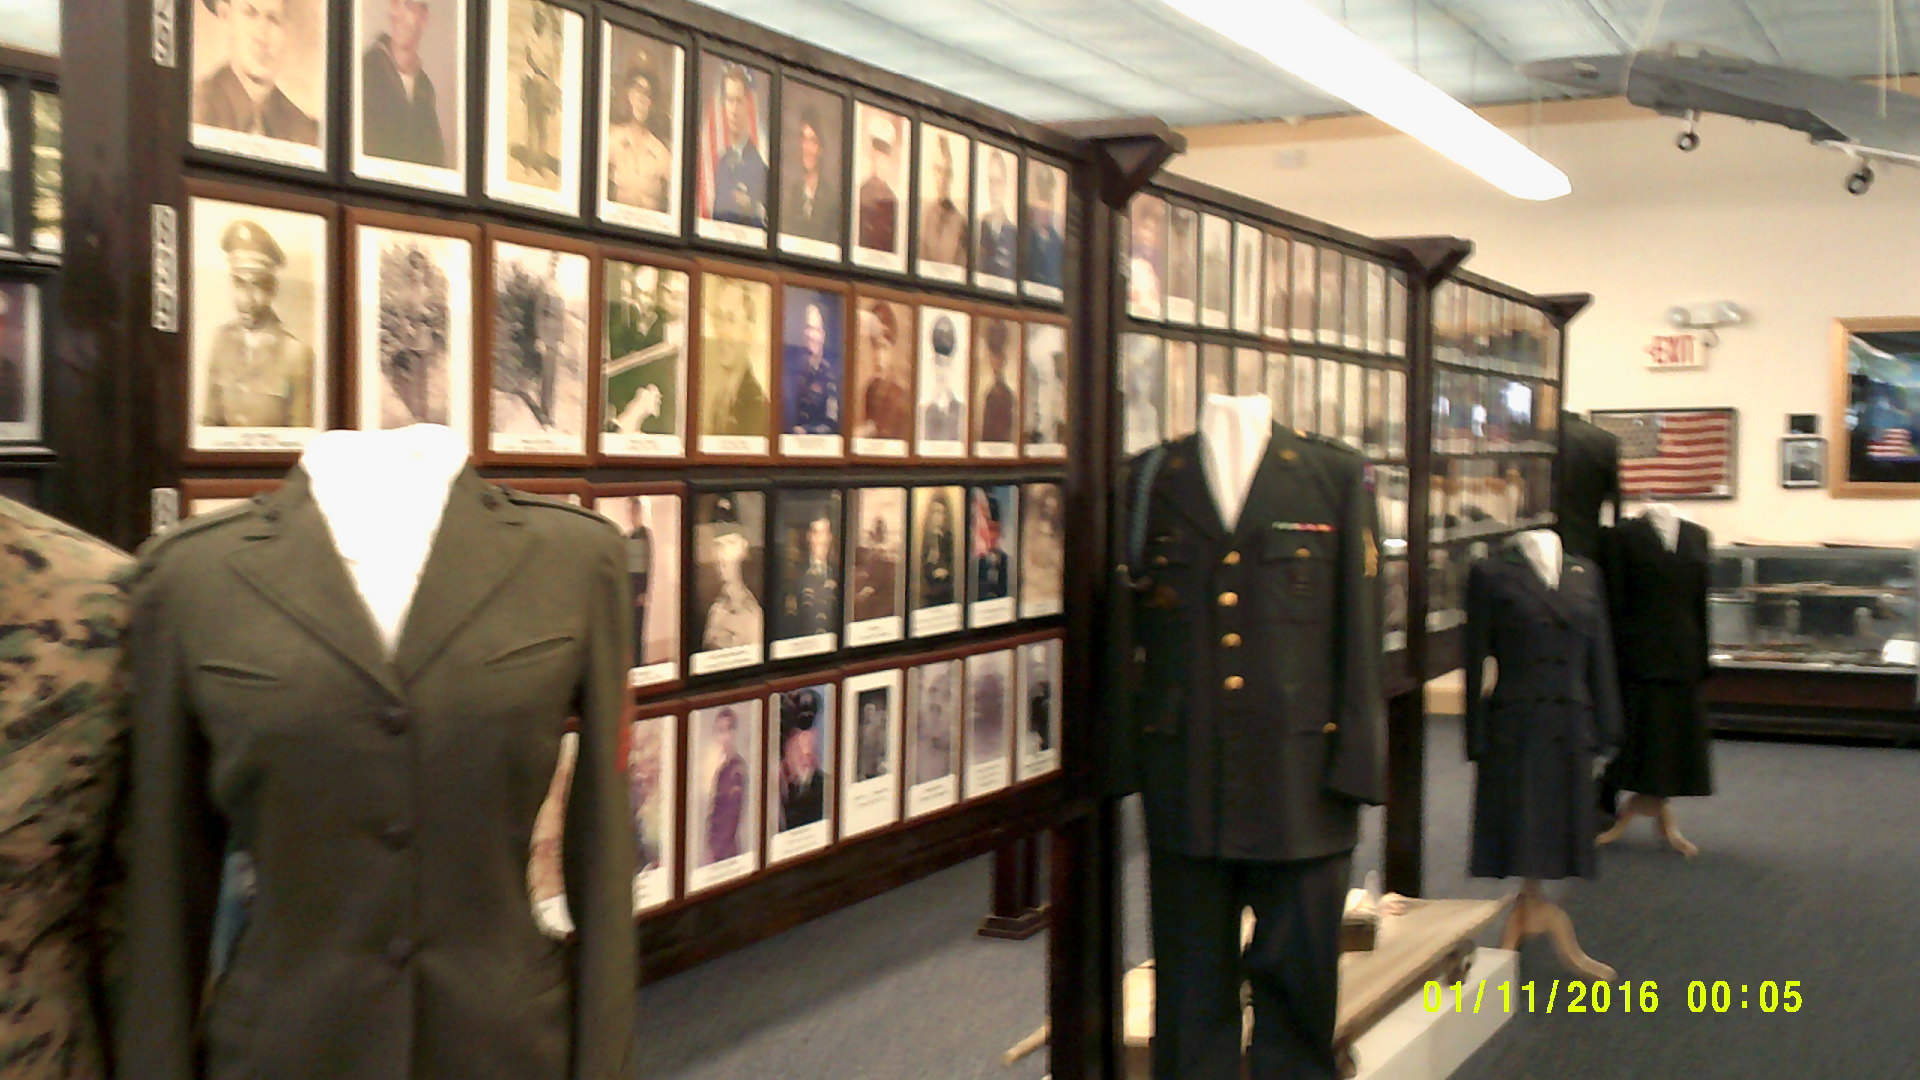 Photographs and uniforms of Edgecombe County Veterans